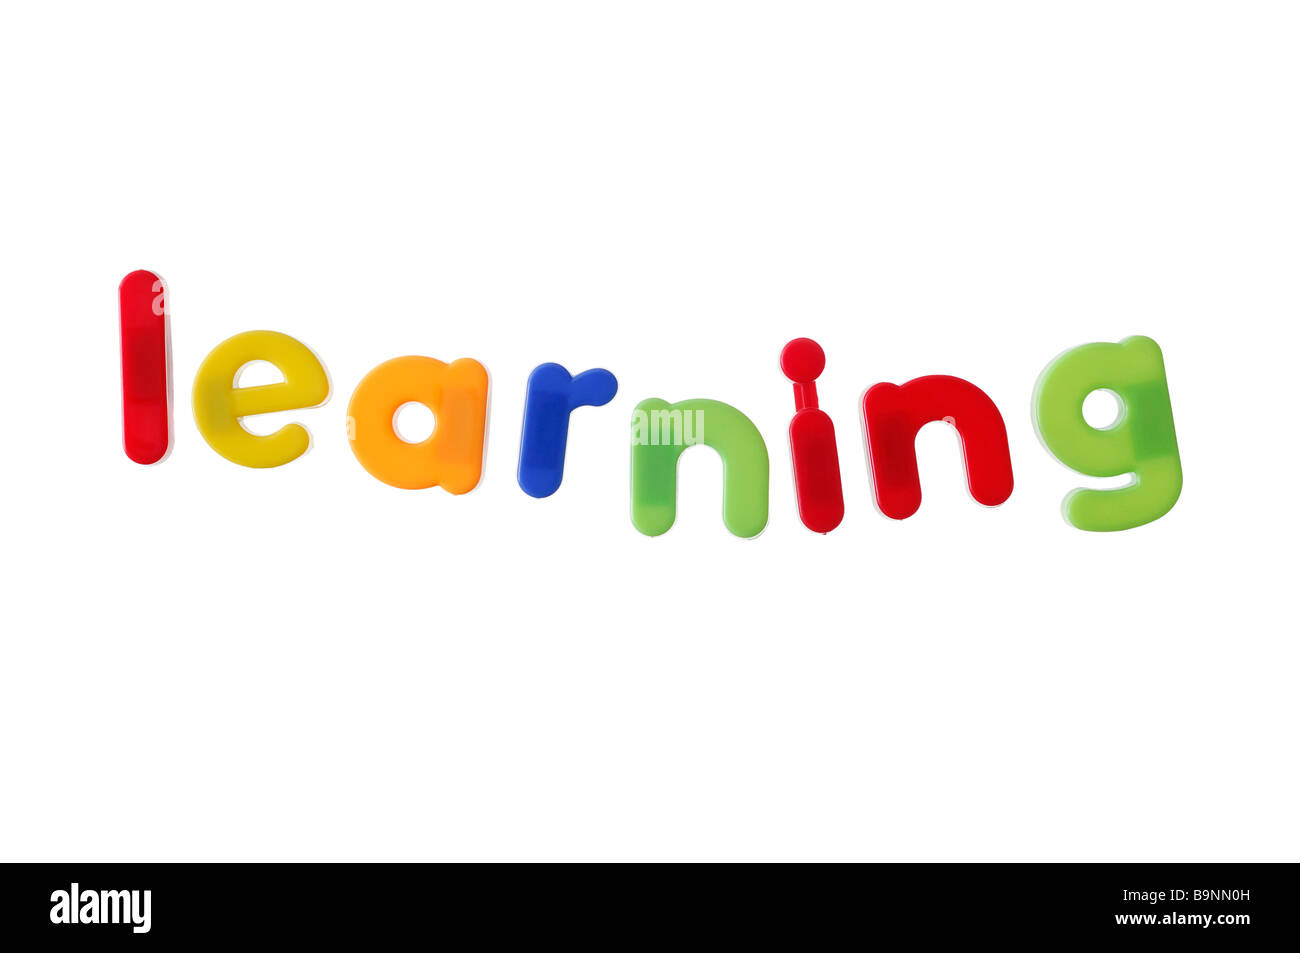 Learning Written with Magnetic Letters - Stock Image